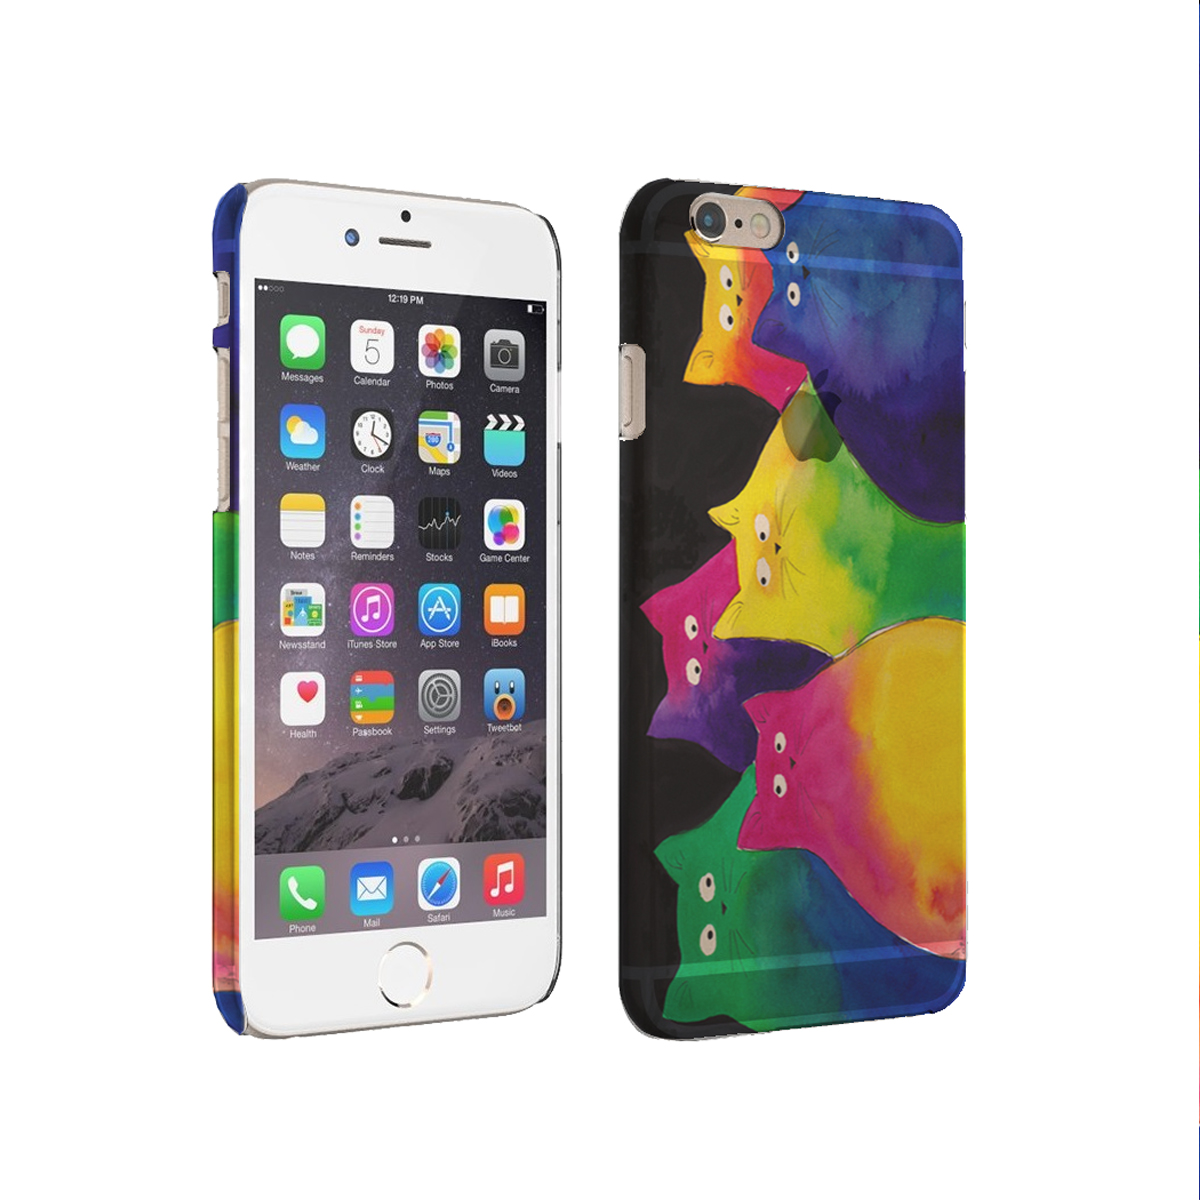 KuzmarK iPhone 6 Plus Rubber Cover Case - Very Colorful Two-Toned Chunky Kitties Art by Denise Every